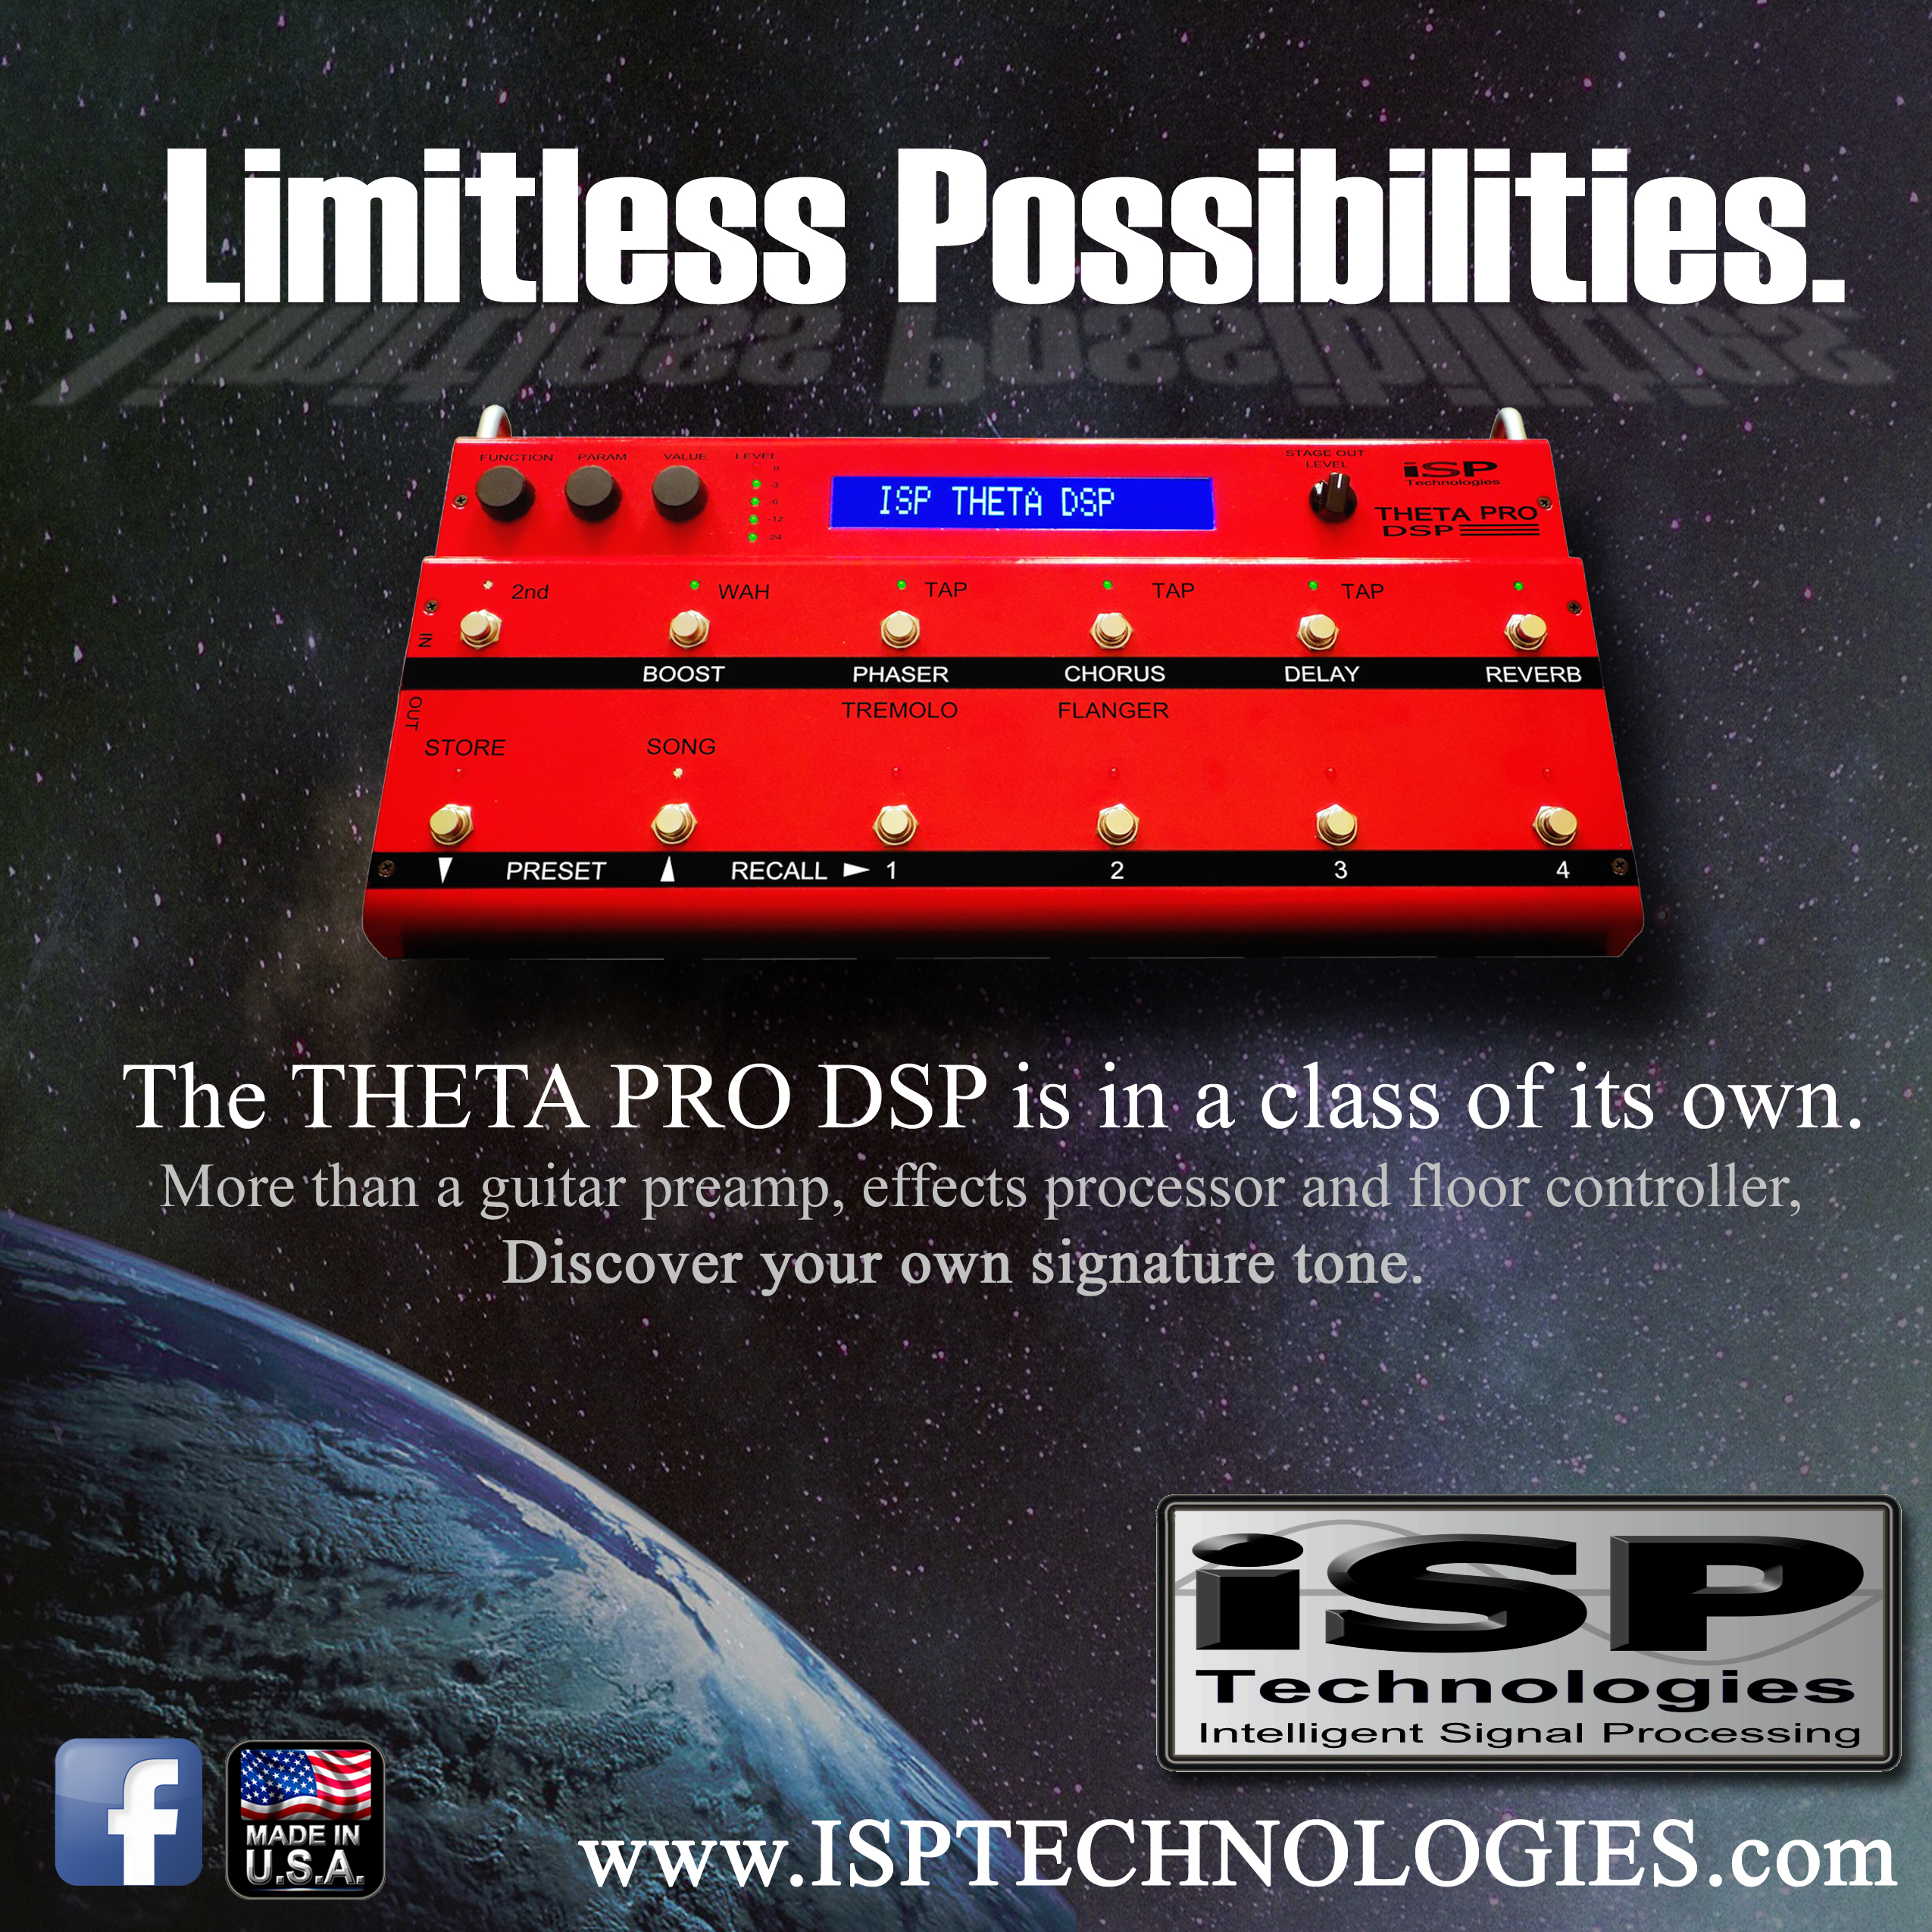 Theta Pro DSP in outer space